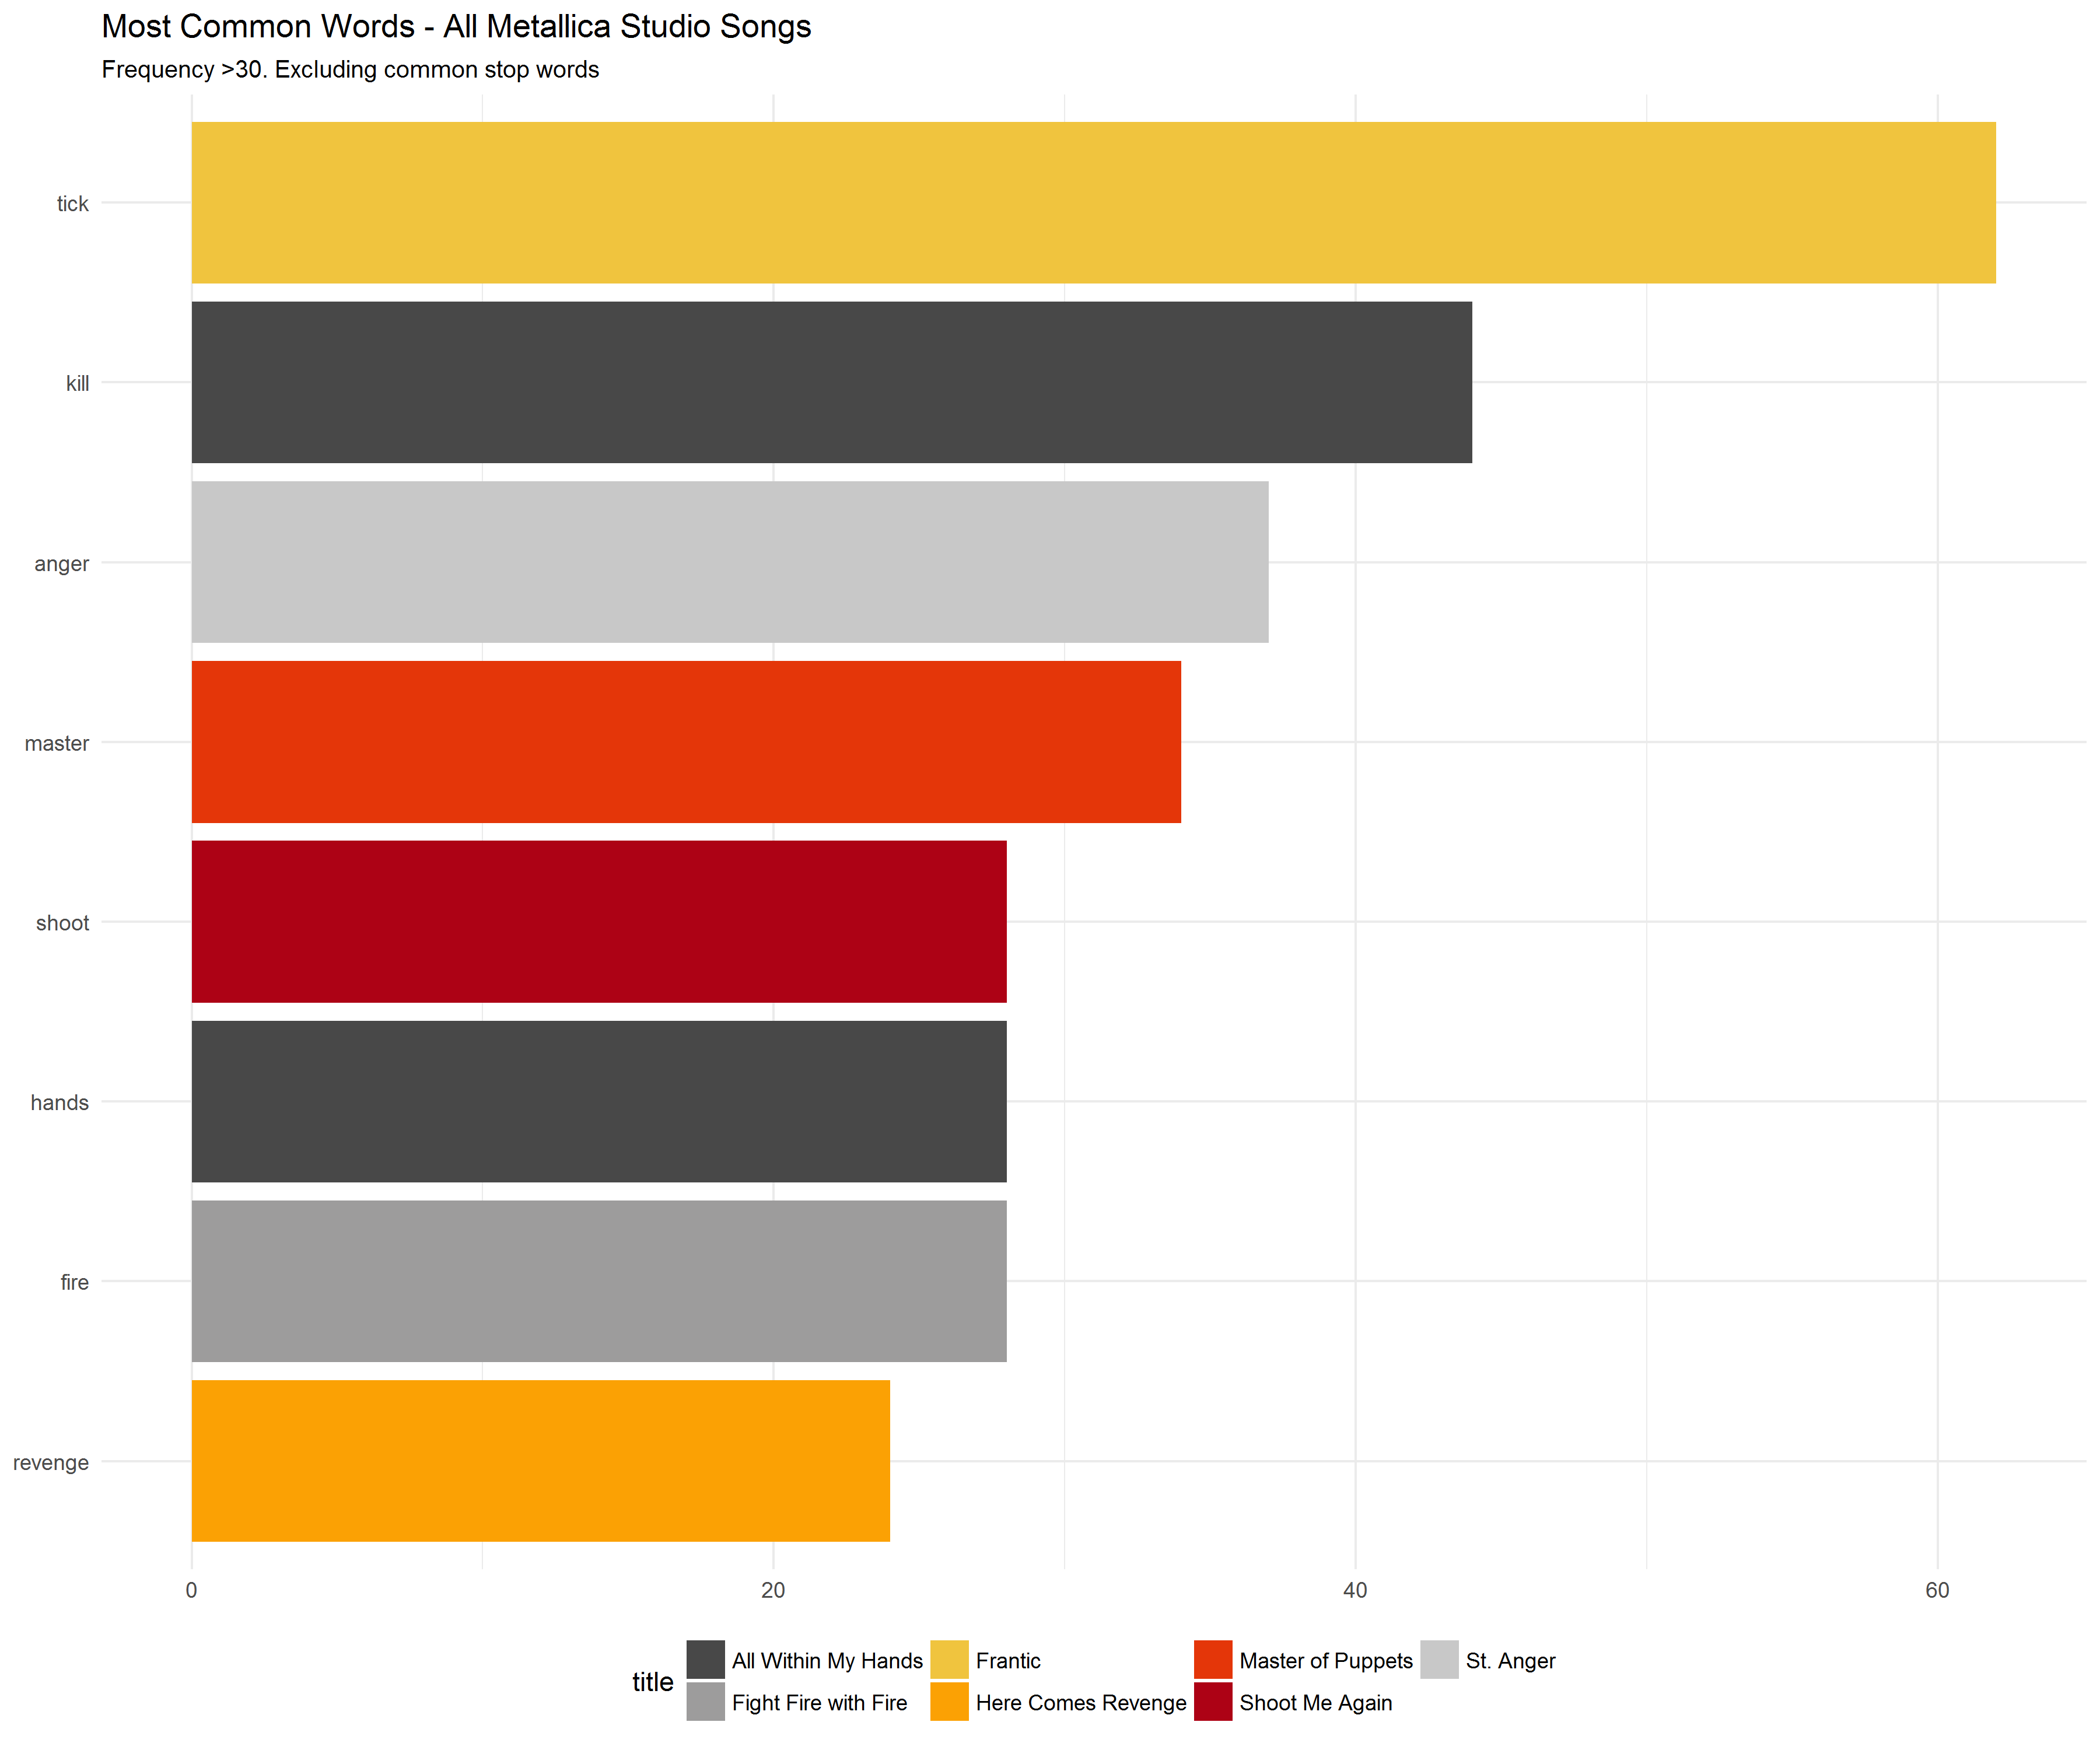 2018-01-28-Most-Common-Words-by-Song-Excluding-Stop-Words.png